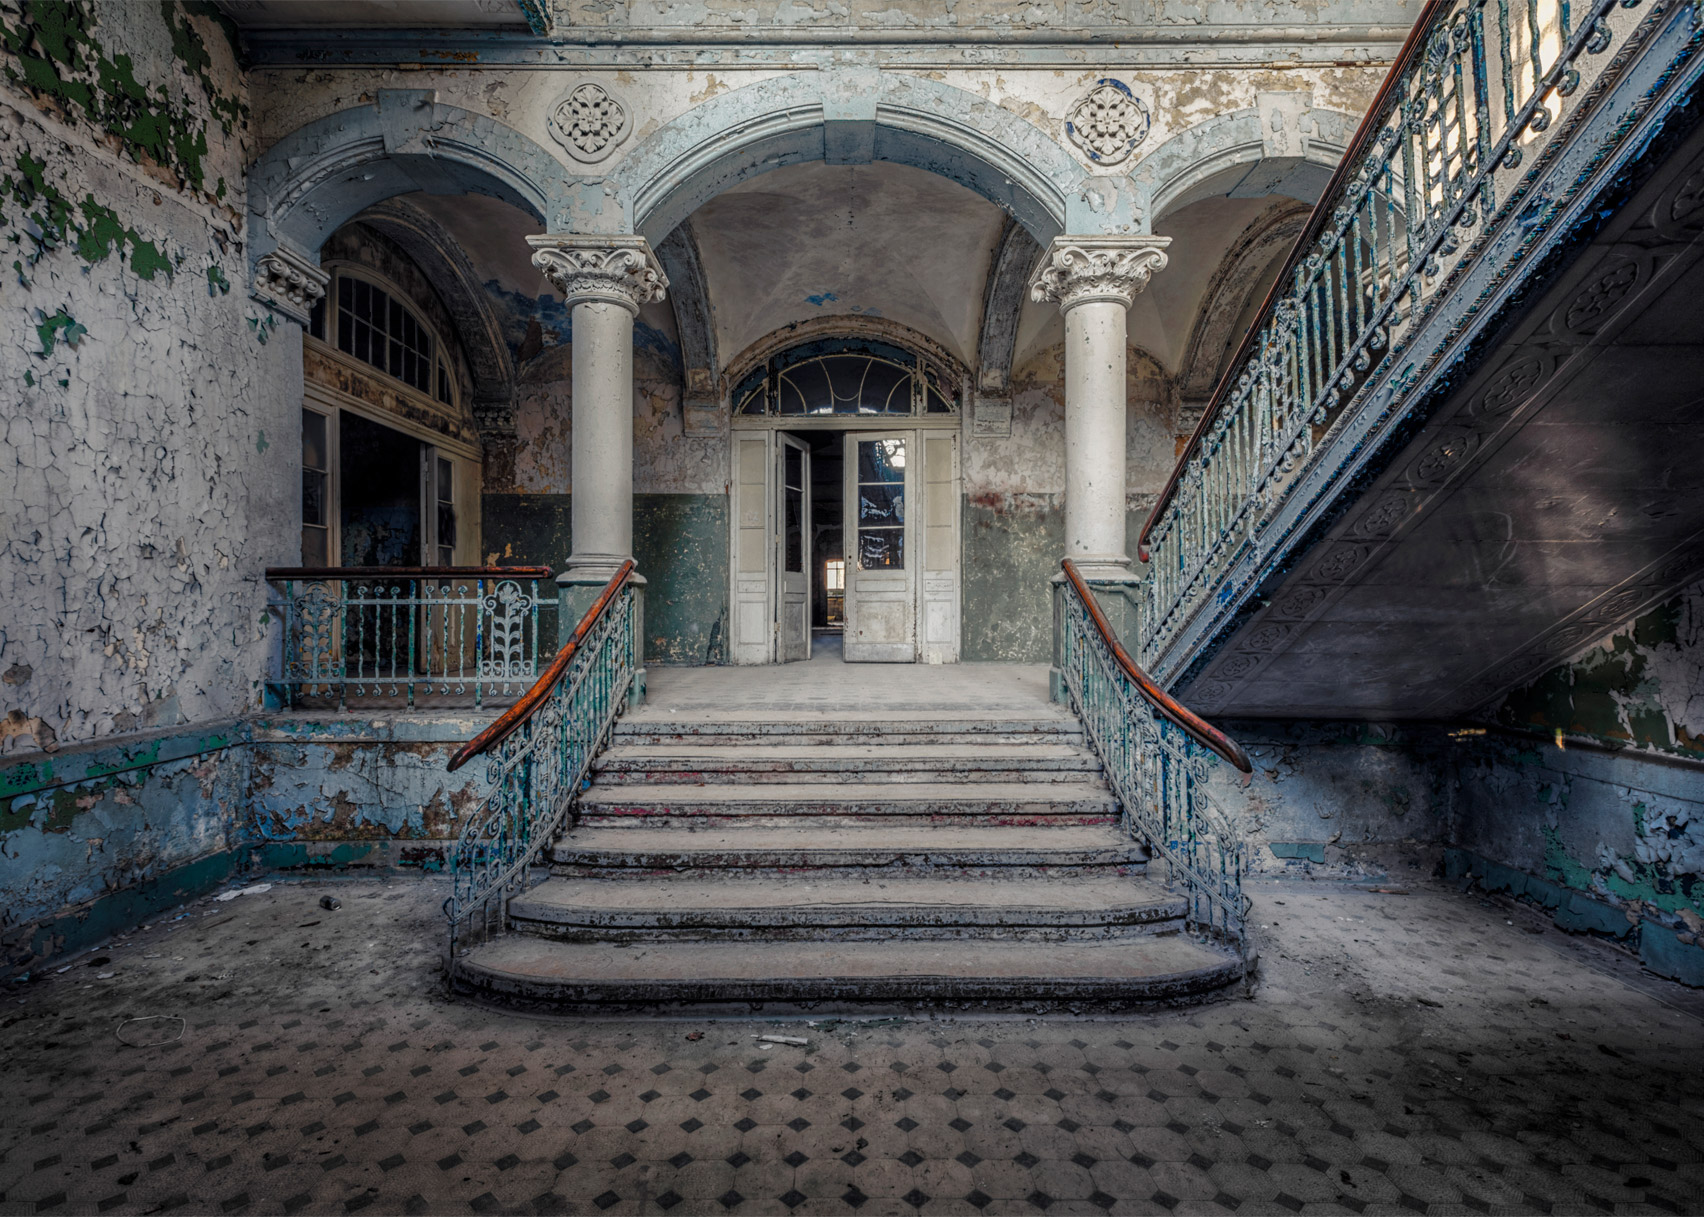 Christian Richter S Abandoned Photographs Of Europe S Empty Buildings